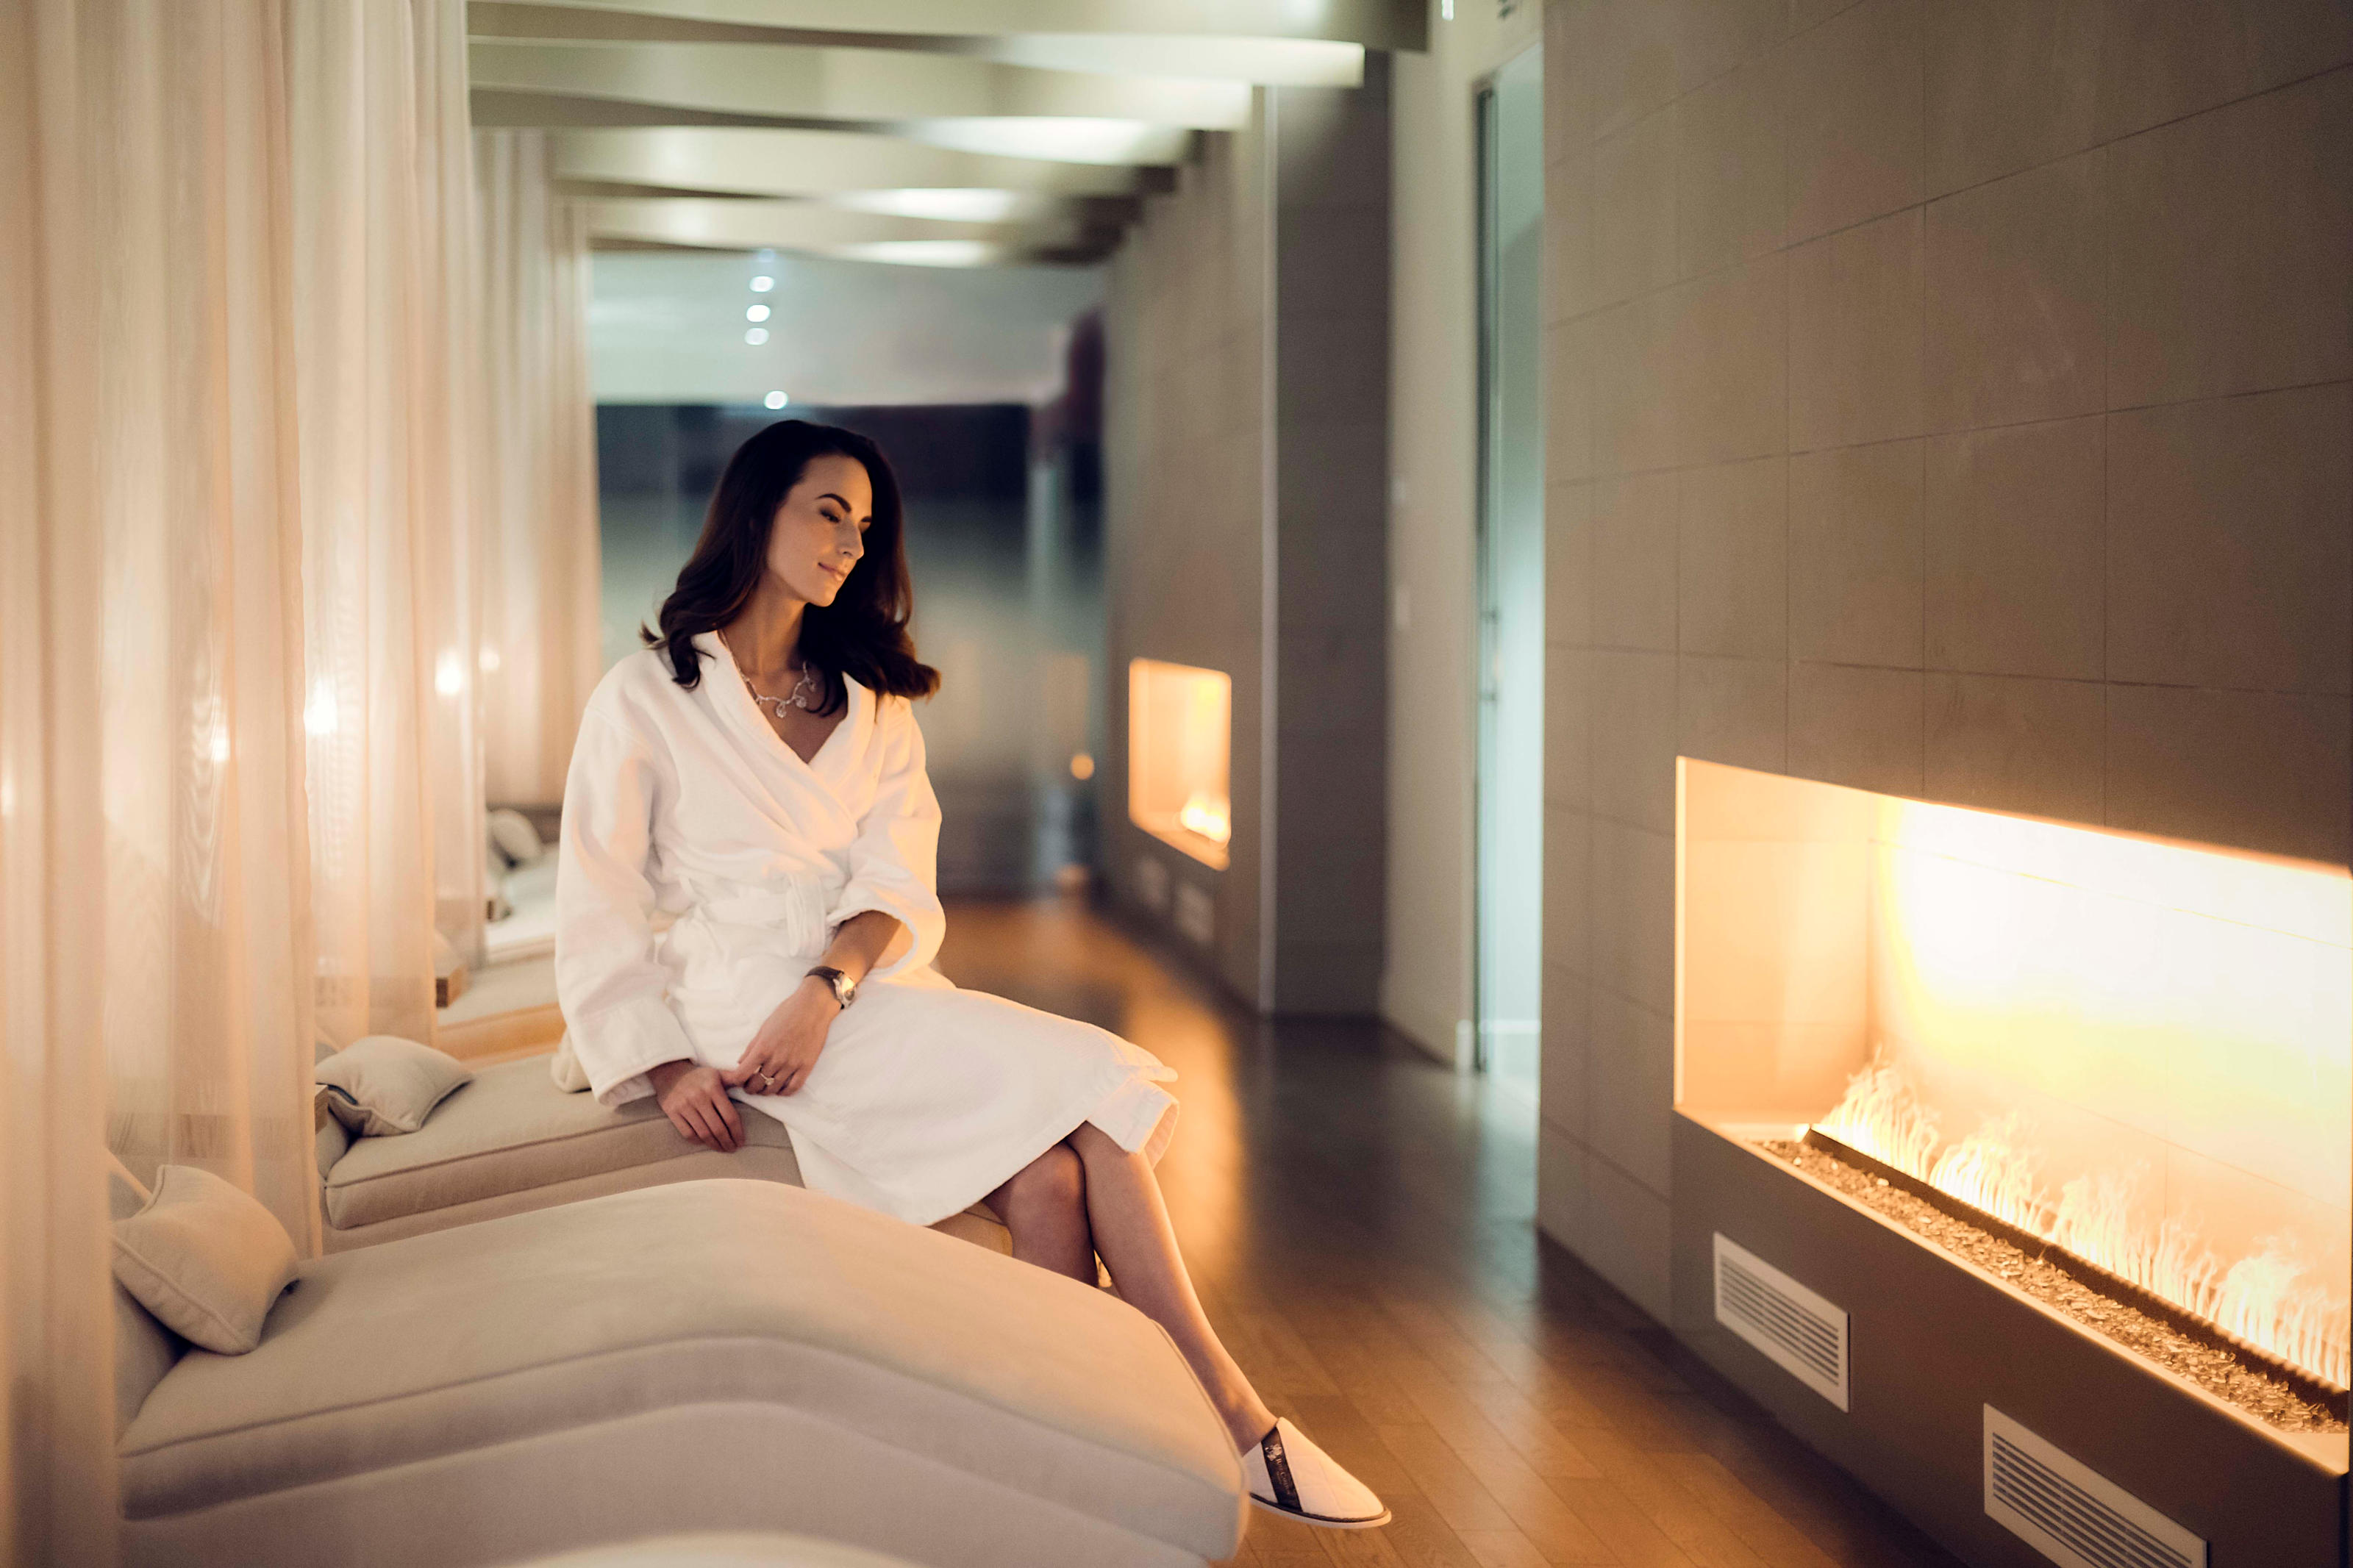 The Ritz-Carlton, Montreal à Montreal: Escape to a sanctuary of wellness at Spa St. James. Featuring a full menu of treatments, including massages, facials and body treatments, this hotel spa can create a serene retreat customized to your needs.  Bring your significant other for a romantically relaxing Couples Experience, or arrange to celebrate your upcoming wedding with The Flawless Bride package. This downtown Montreal spa also features a range of signature treatments that offer a personalized touch, whether it be a Detox & Revive ritual or The St. James Signature Facelift, which eschews surgery for muscle manipulation via microcurrents. Other services include manicures, pedicures, hair styling, men's treatments and more.